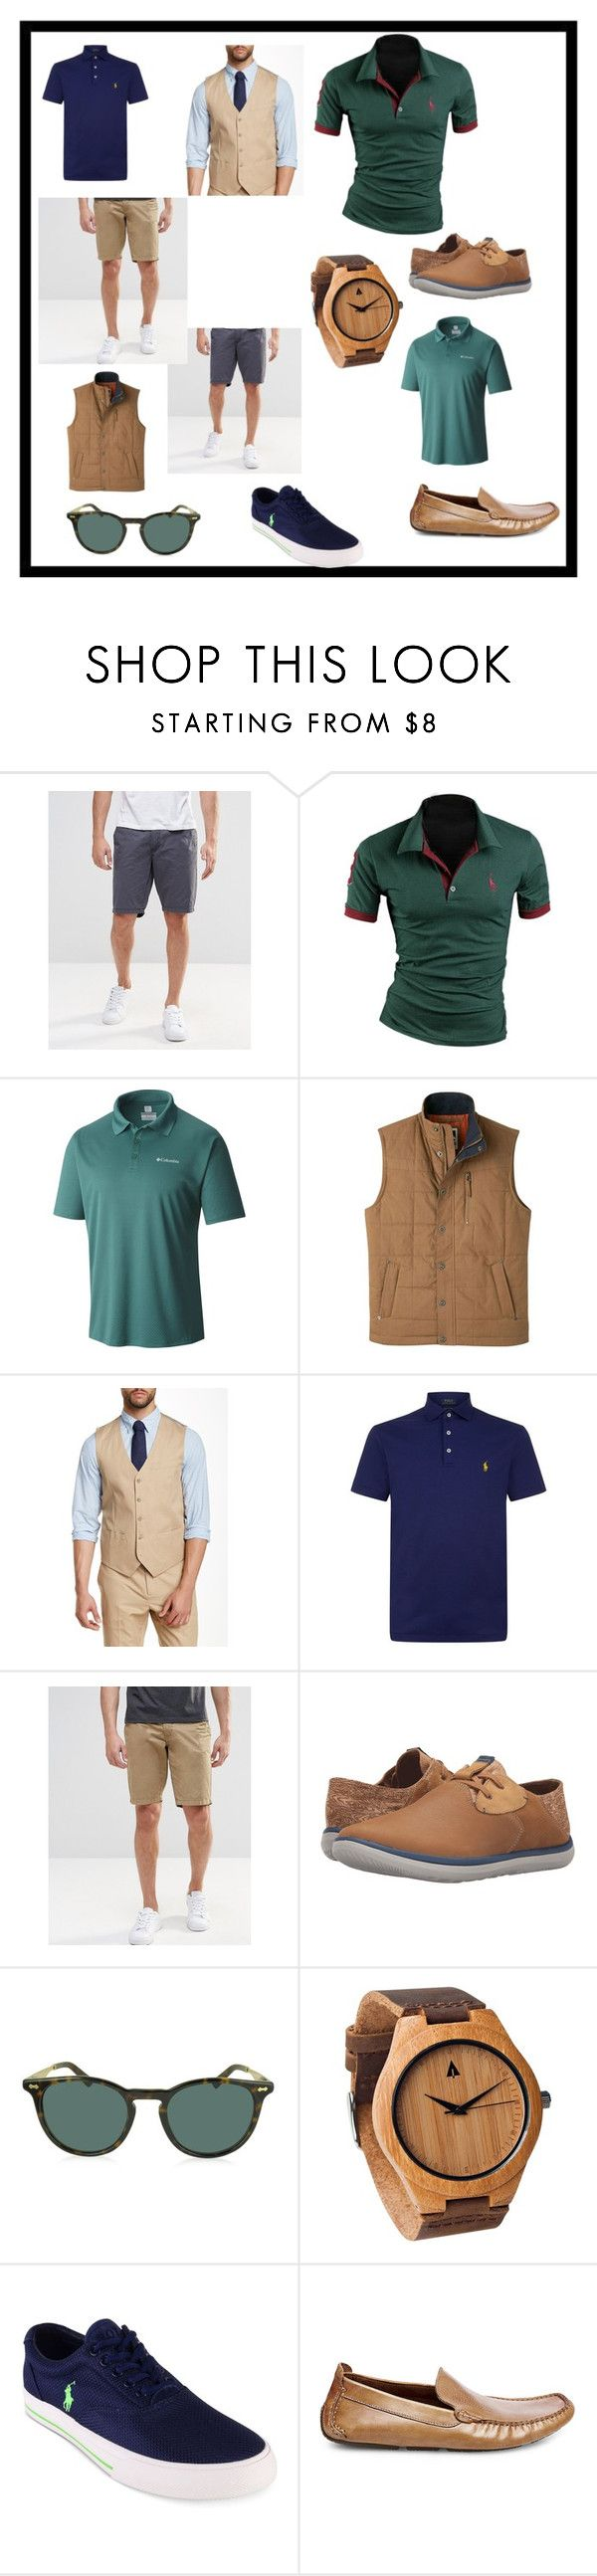 """Tenu garçons d'honneurs brunch"" by shannon-halimi on Polyvore featuring Blend, Columbia, Mountain Khakis, Perry Ellis, Polo Ralph Lauren, Merrell, Gucci, Steve Madden, men's fashion et menswear"